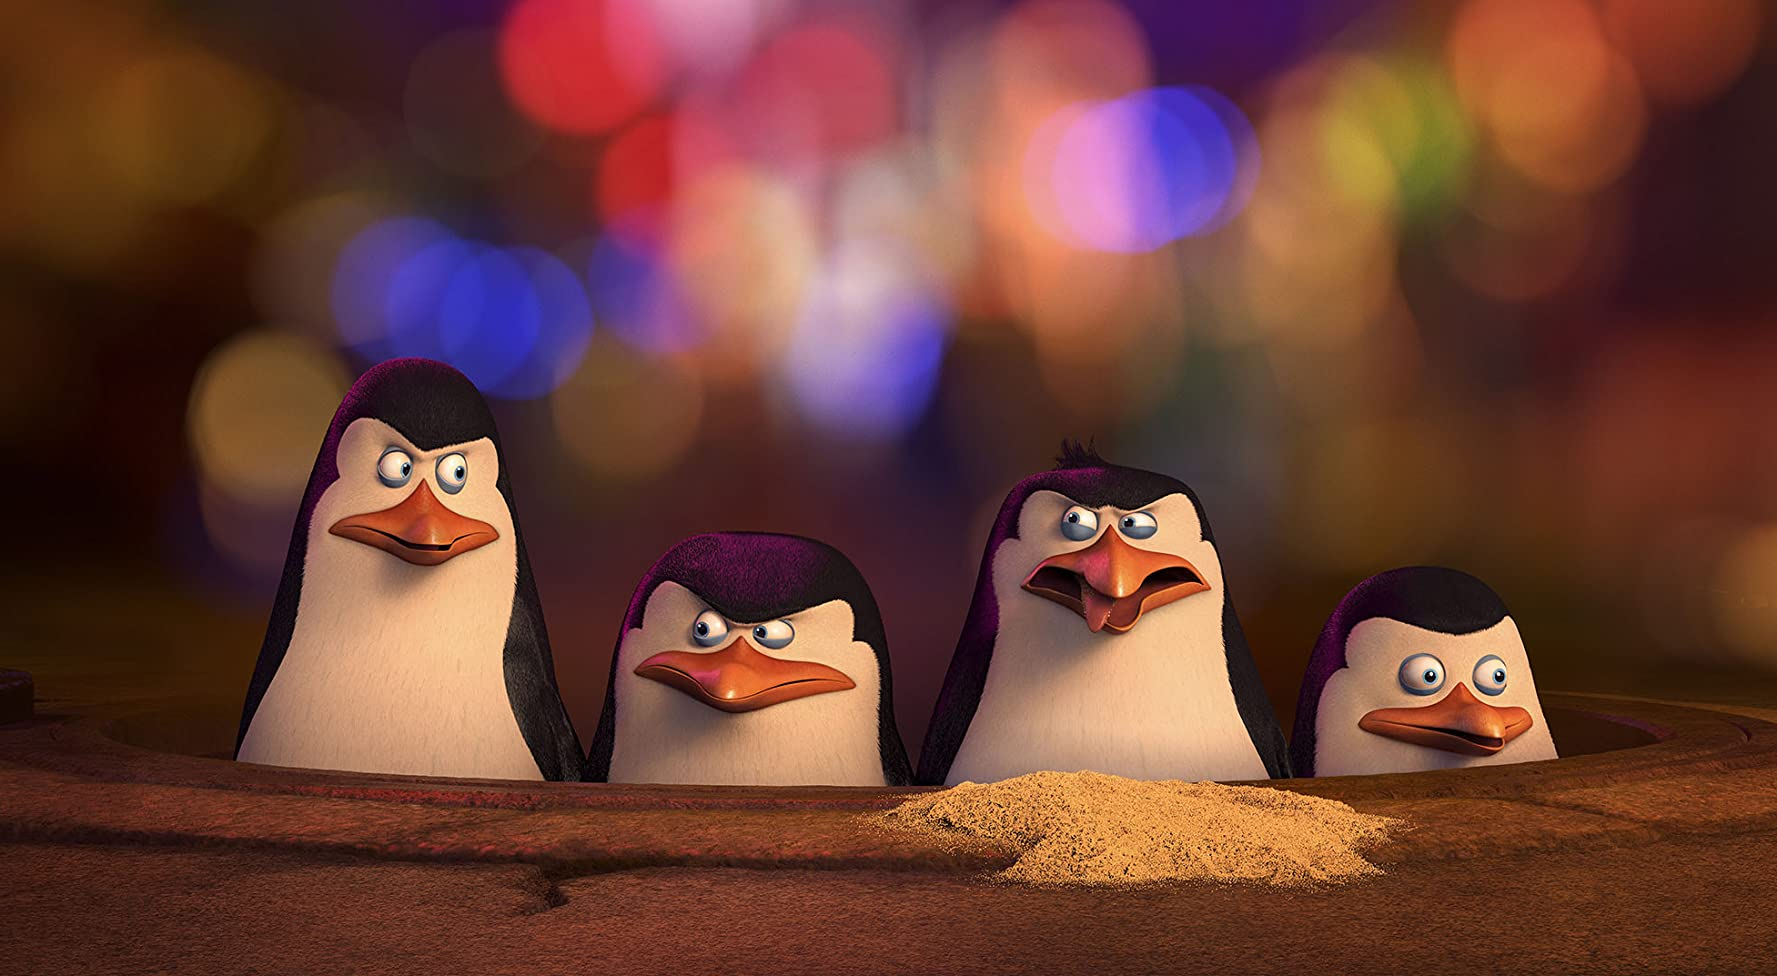 Los pingüinos de Madagascar (Penguins of Madagascar)